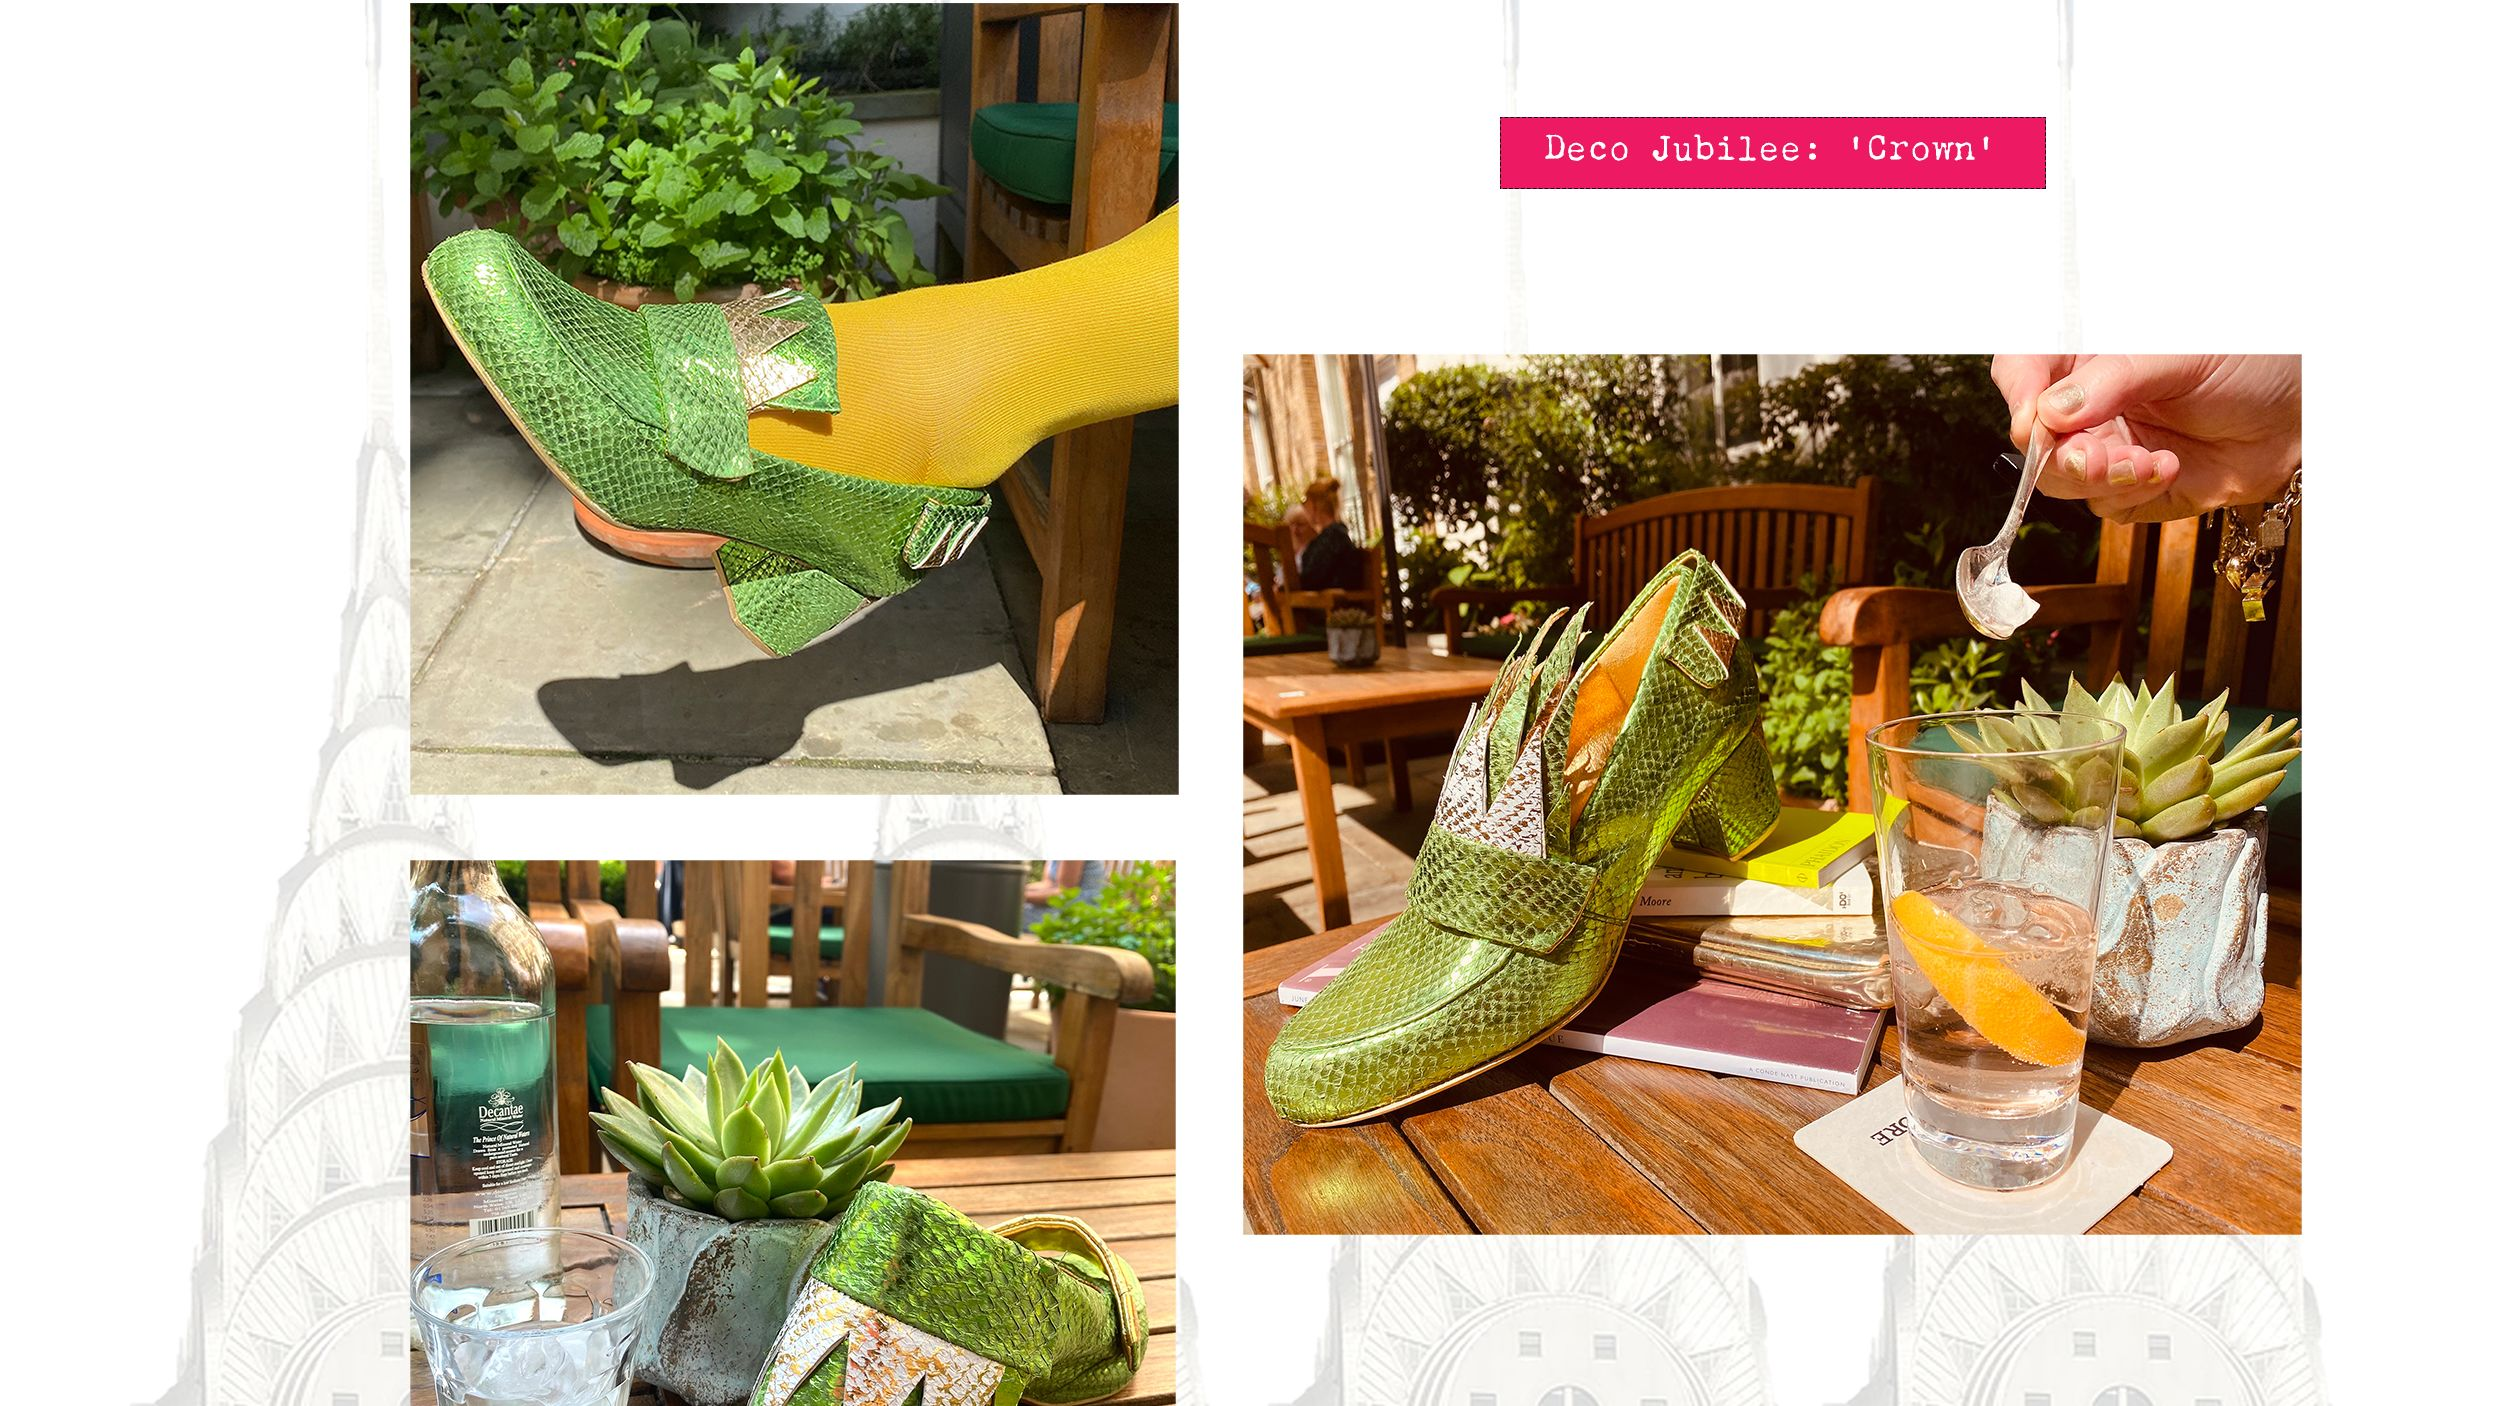 Multi-way green loafer prototype with magnetic snap-on accessories.